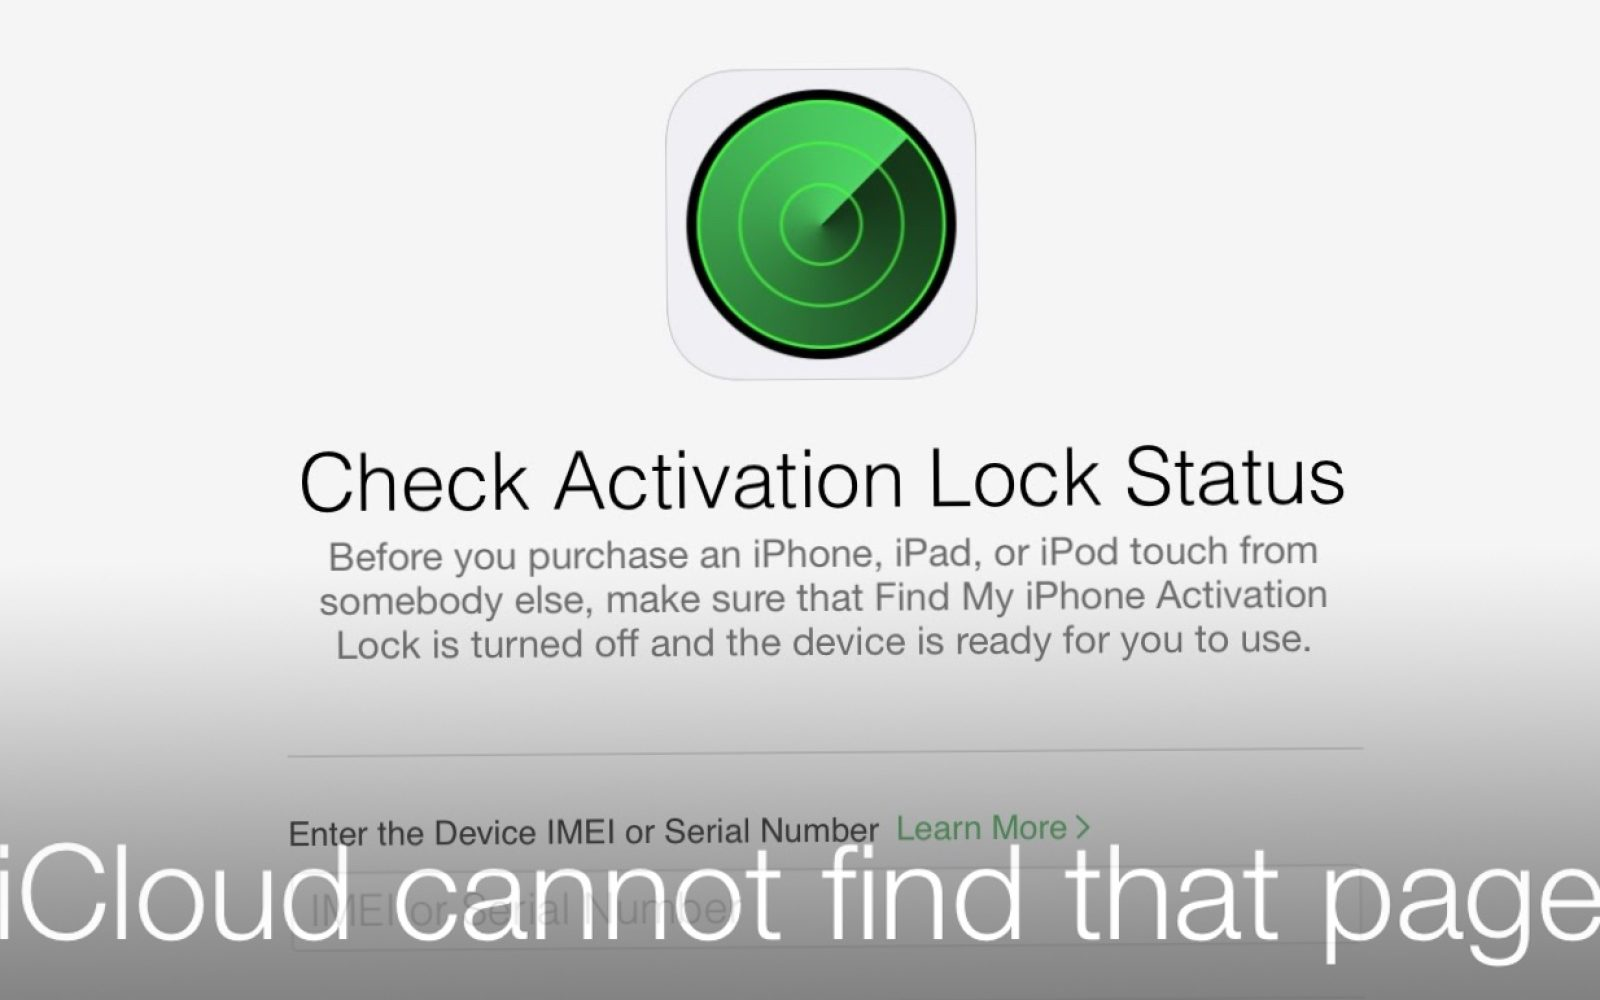 apple inexplicably removes icloud activation lock status page which